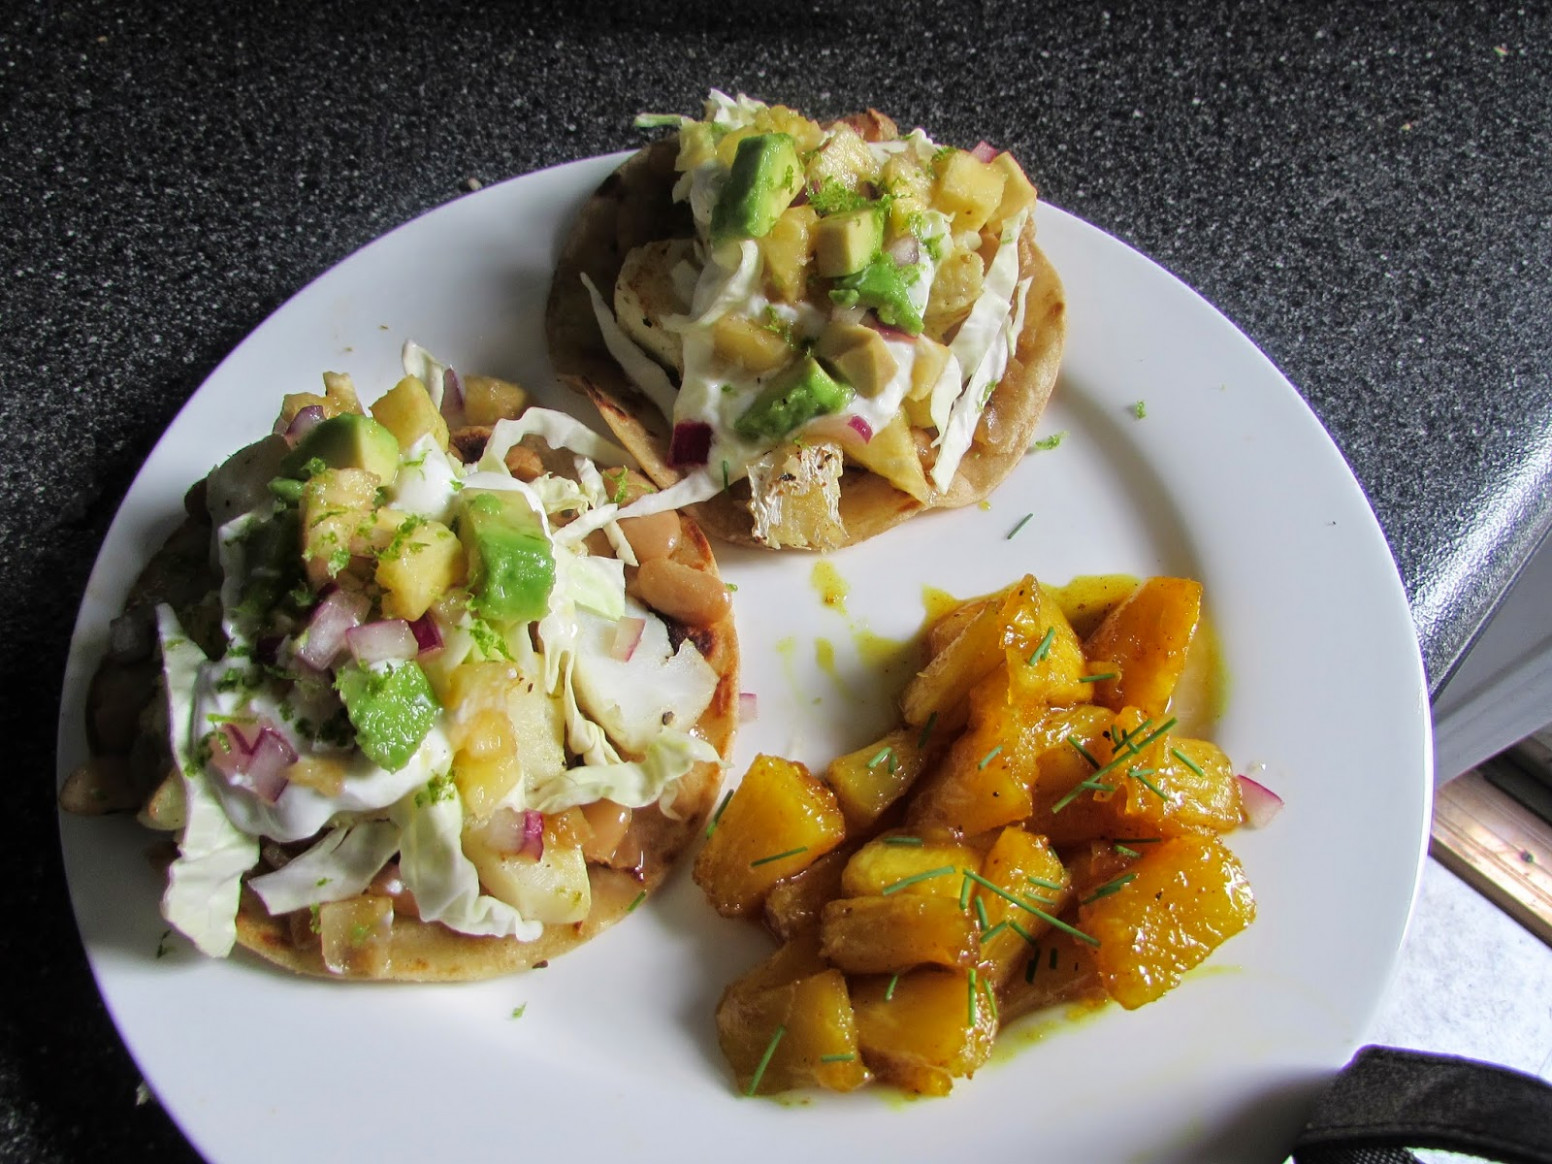 15 Day Fix Recipes: Summer Fish Tostadas - recipes for summer dinner